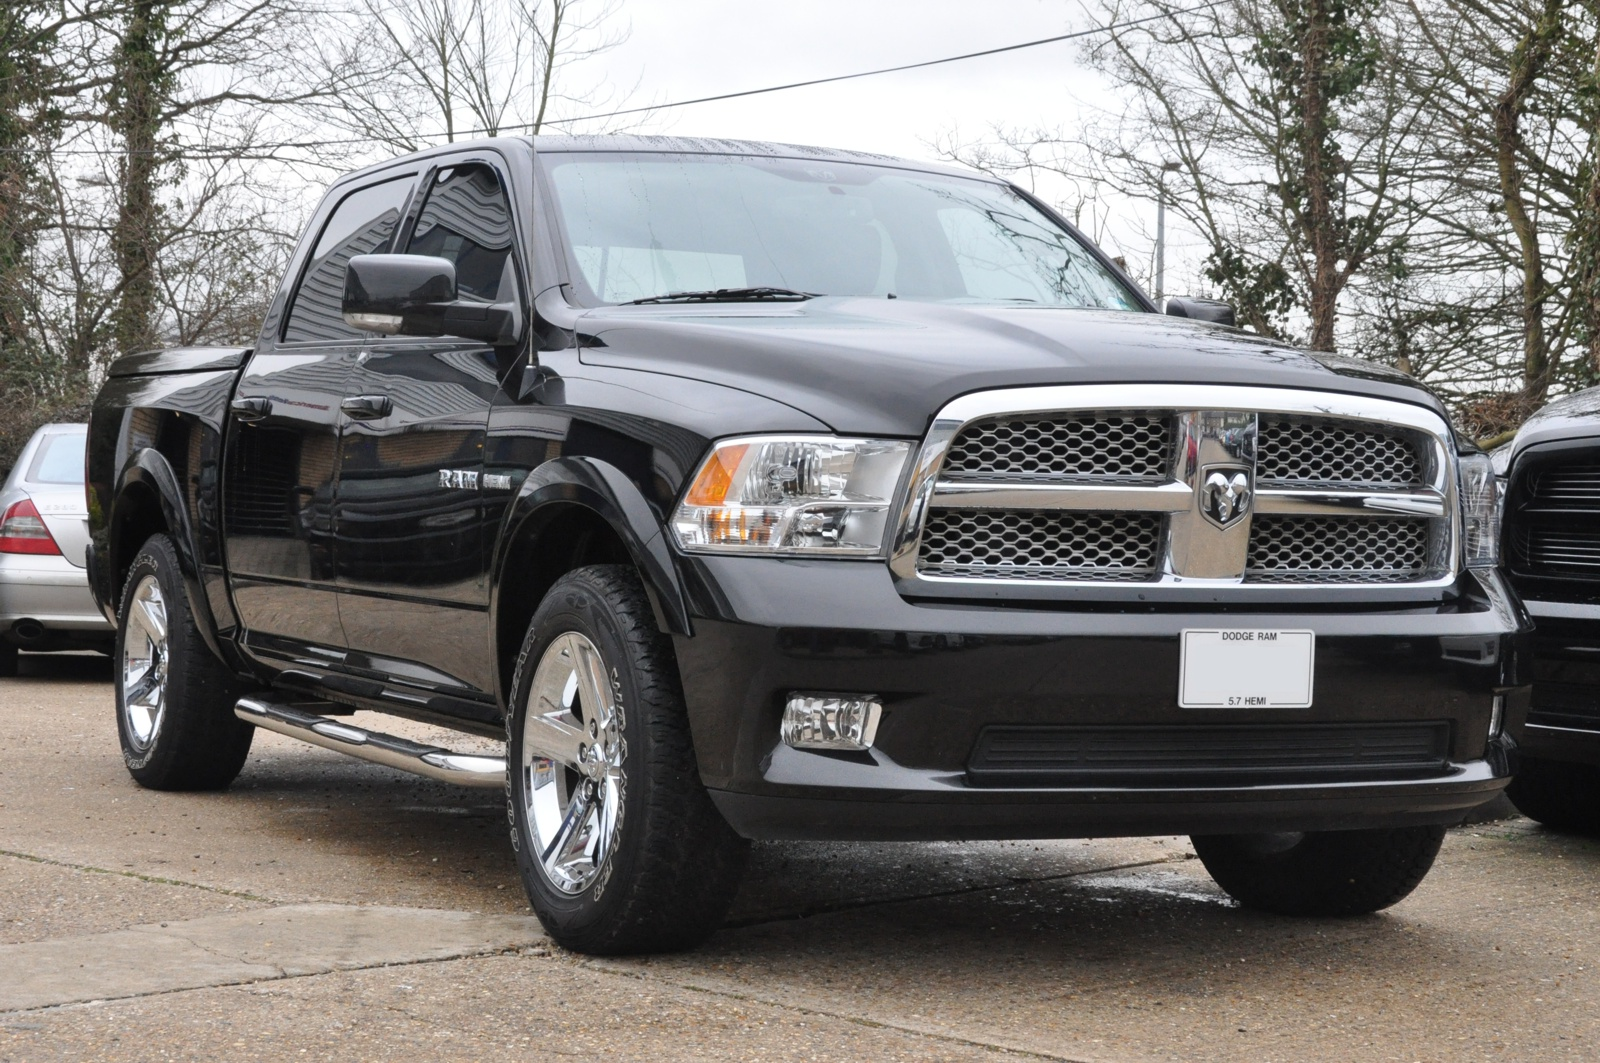 2009 59 dodge ram crew cab 4x4 sport prins lpg. Black Bedroom Furniture Sets. Home Design Ideas